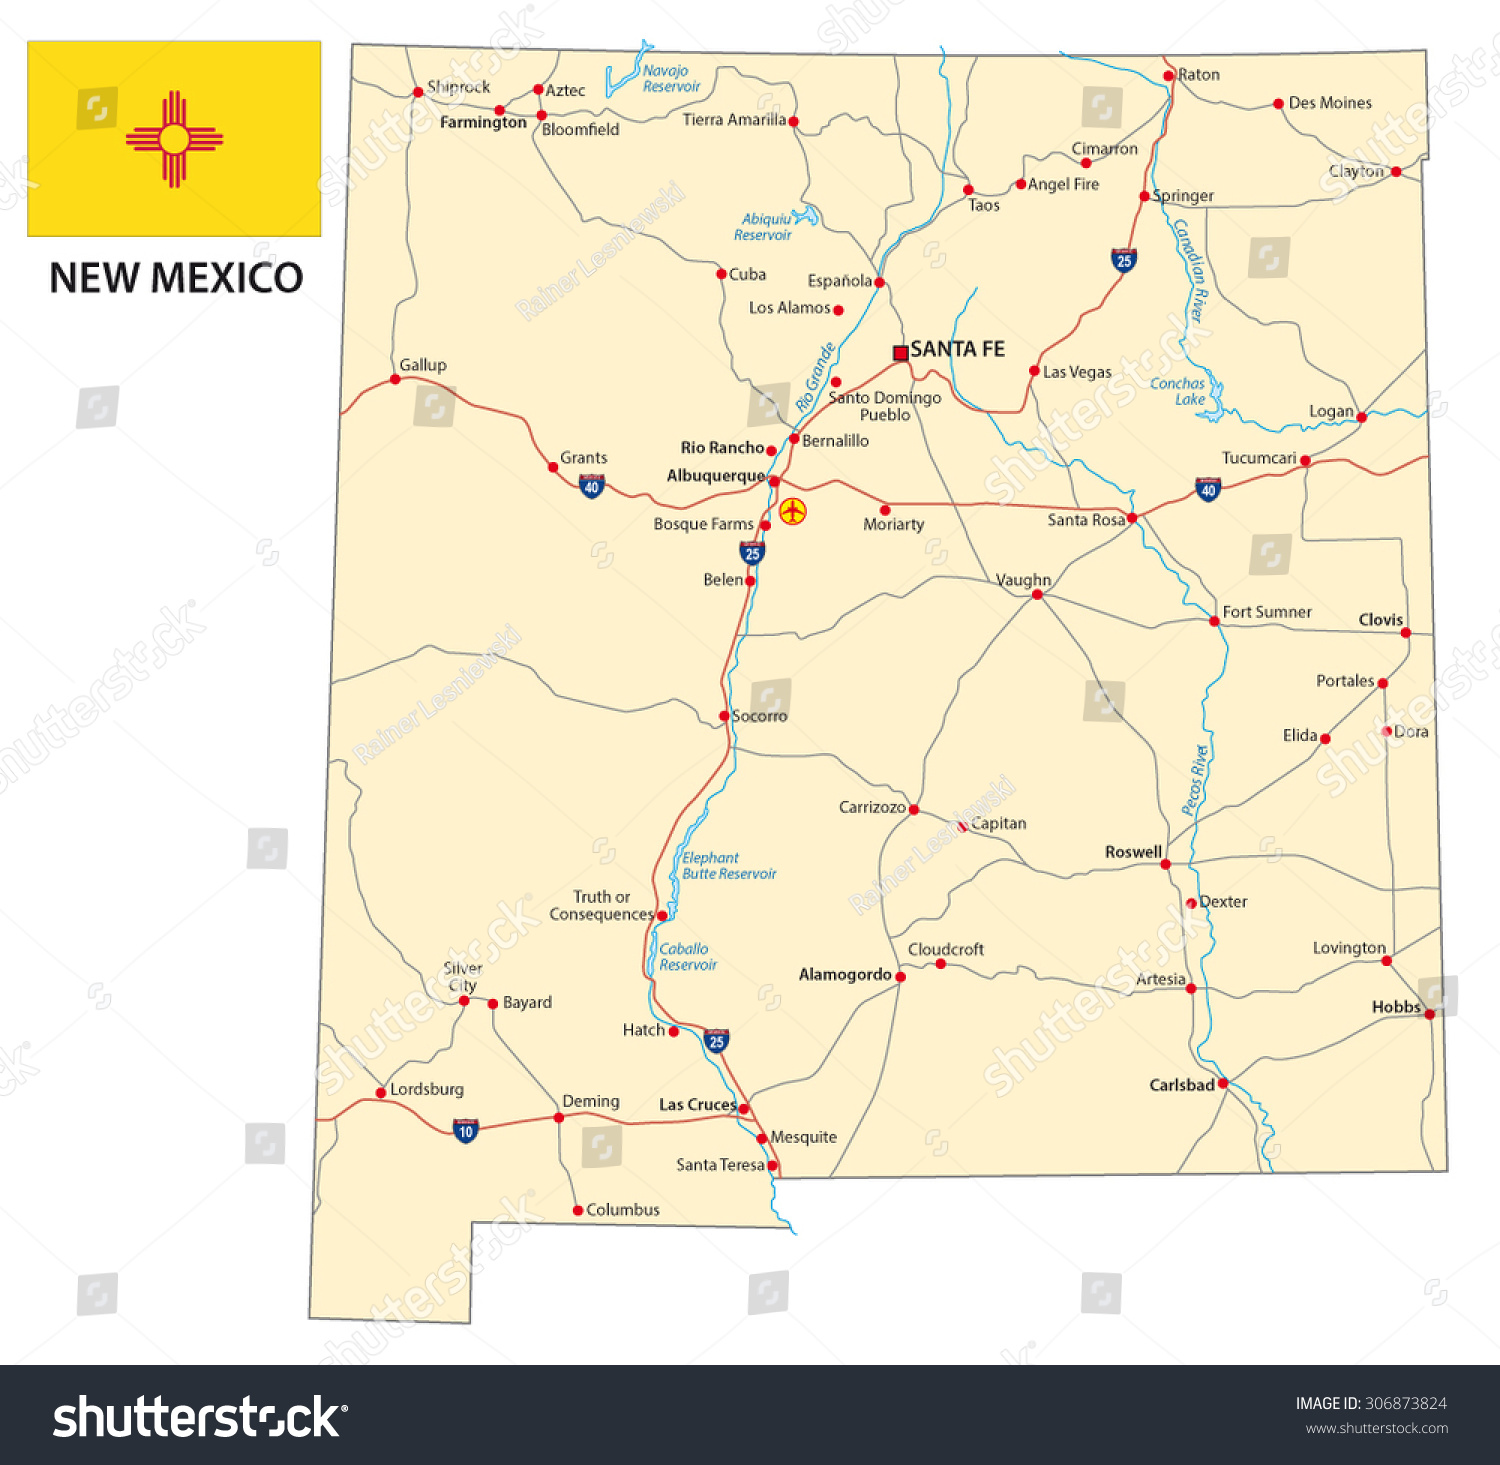 New Mexico Road Map four stages of a product life cycle